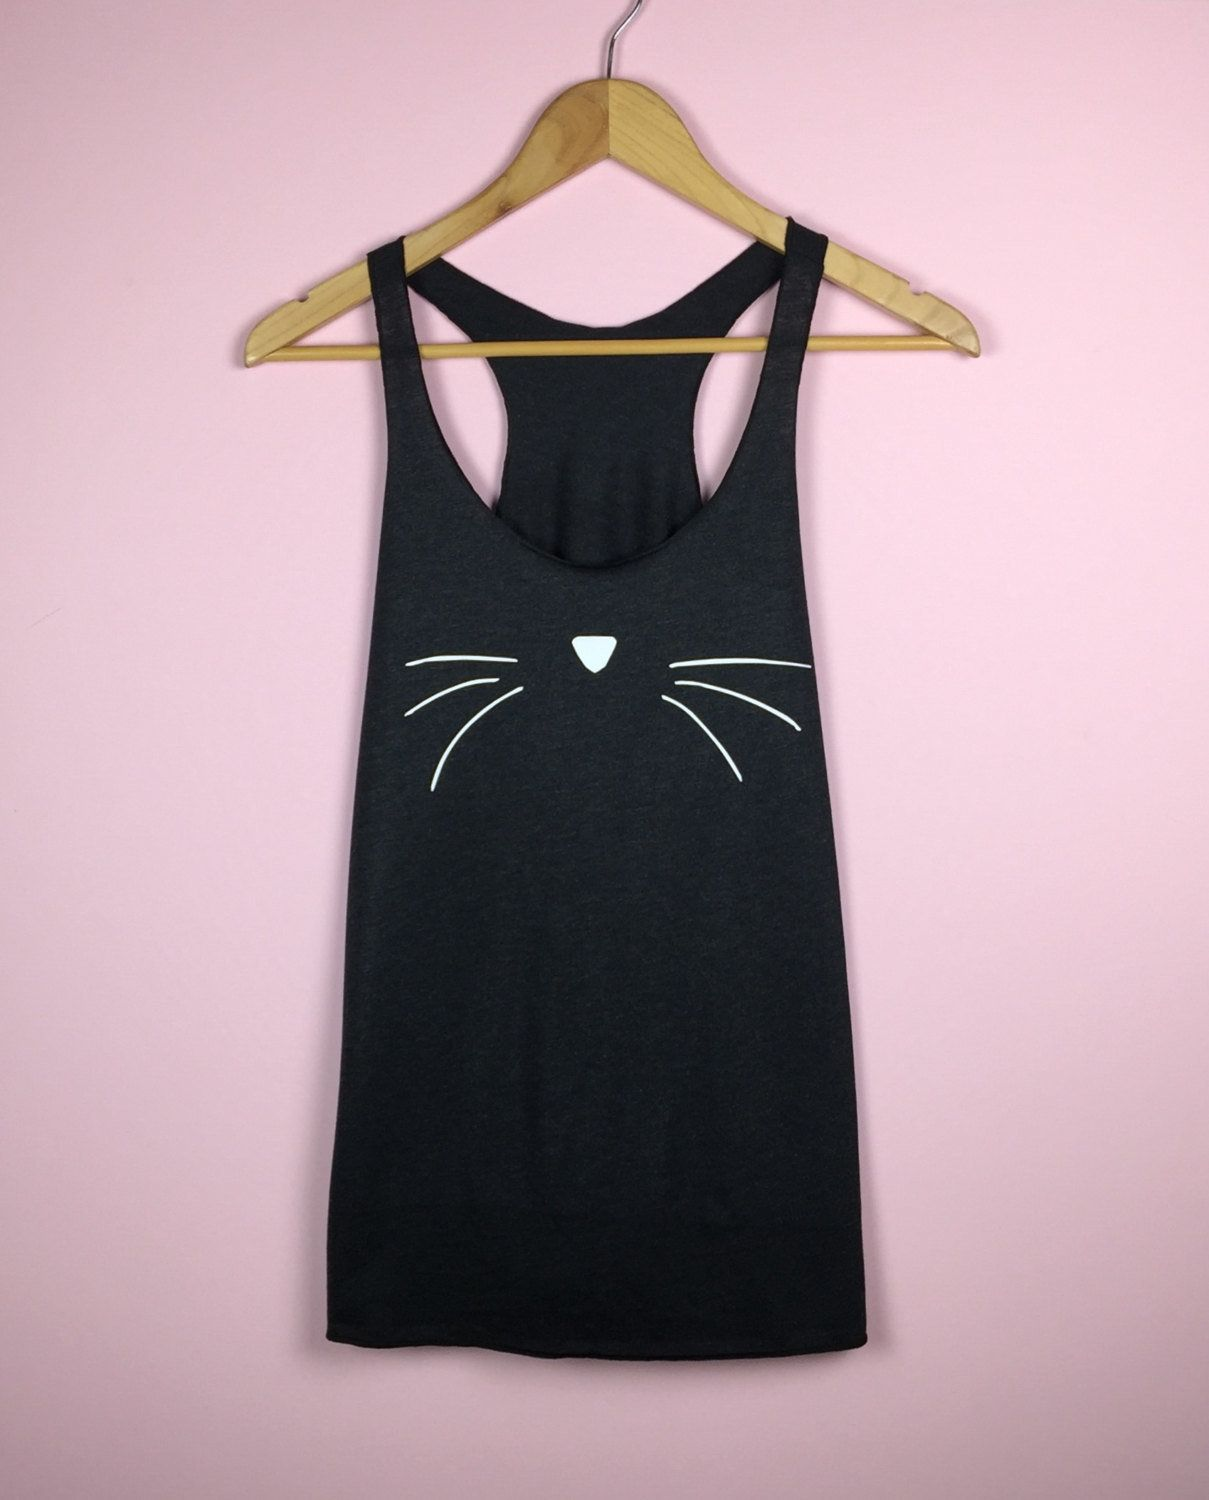 "Cat Whiskers Tank, $21, <a href=""https://www.etsy.com/listing/260926956/cat-face-shirt-cat-lover-gift-cat-face?ga_order="